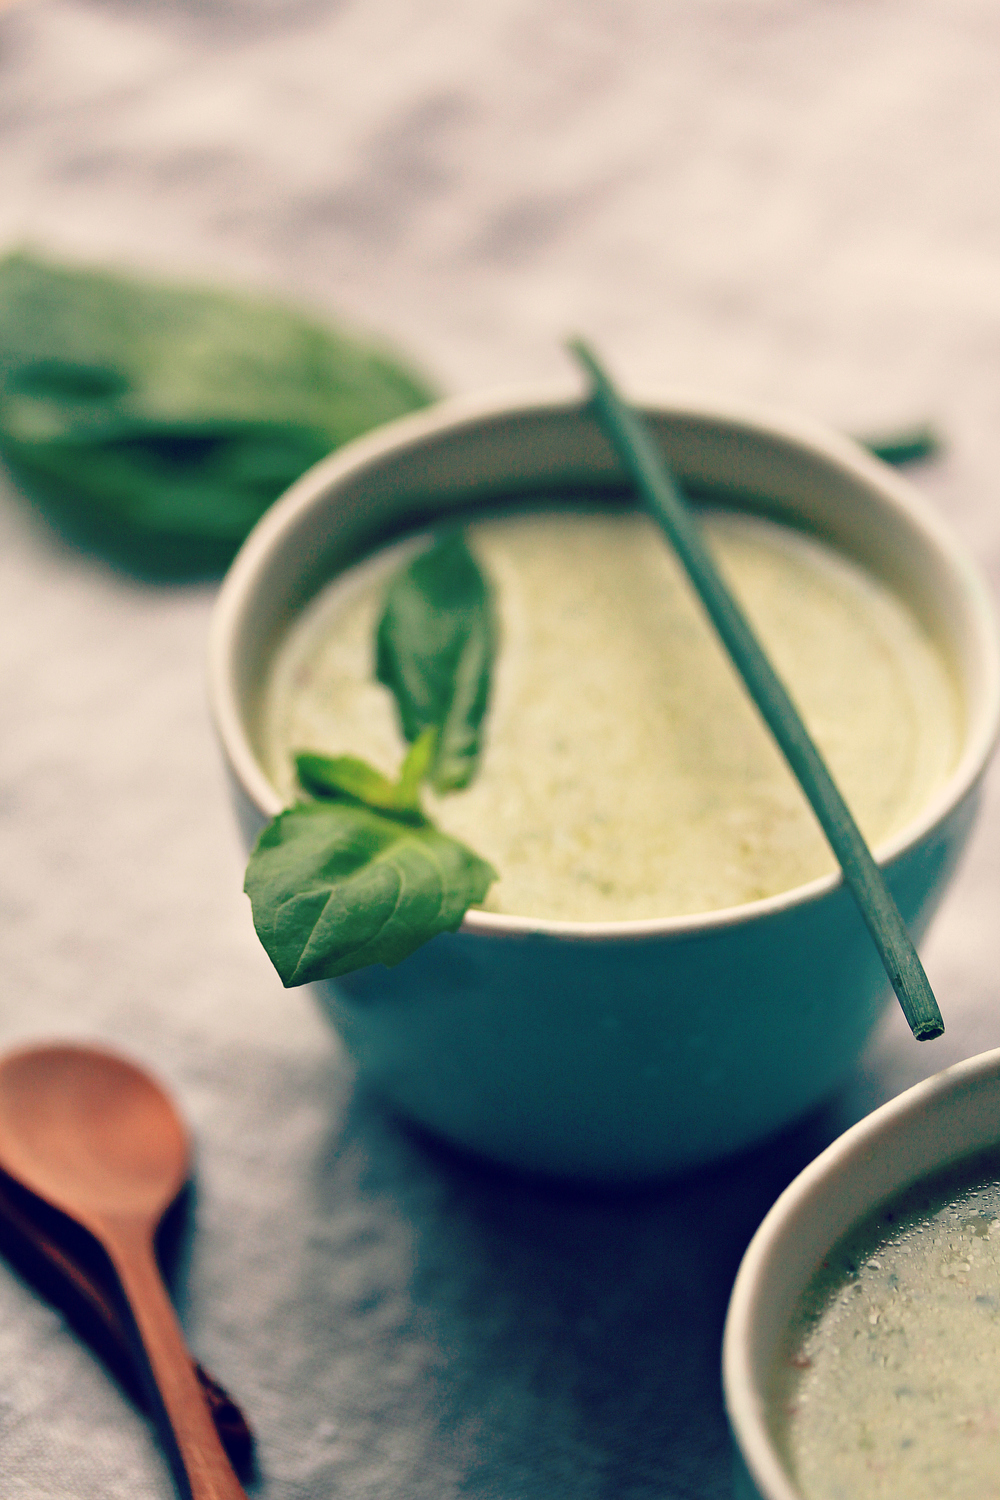 ©Cold Cucumber and Yogurt Soup by Dena T Bray